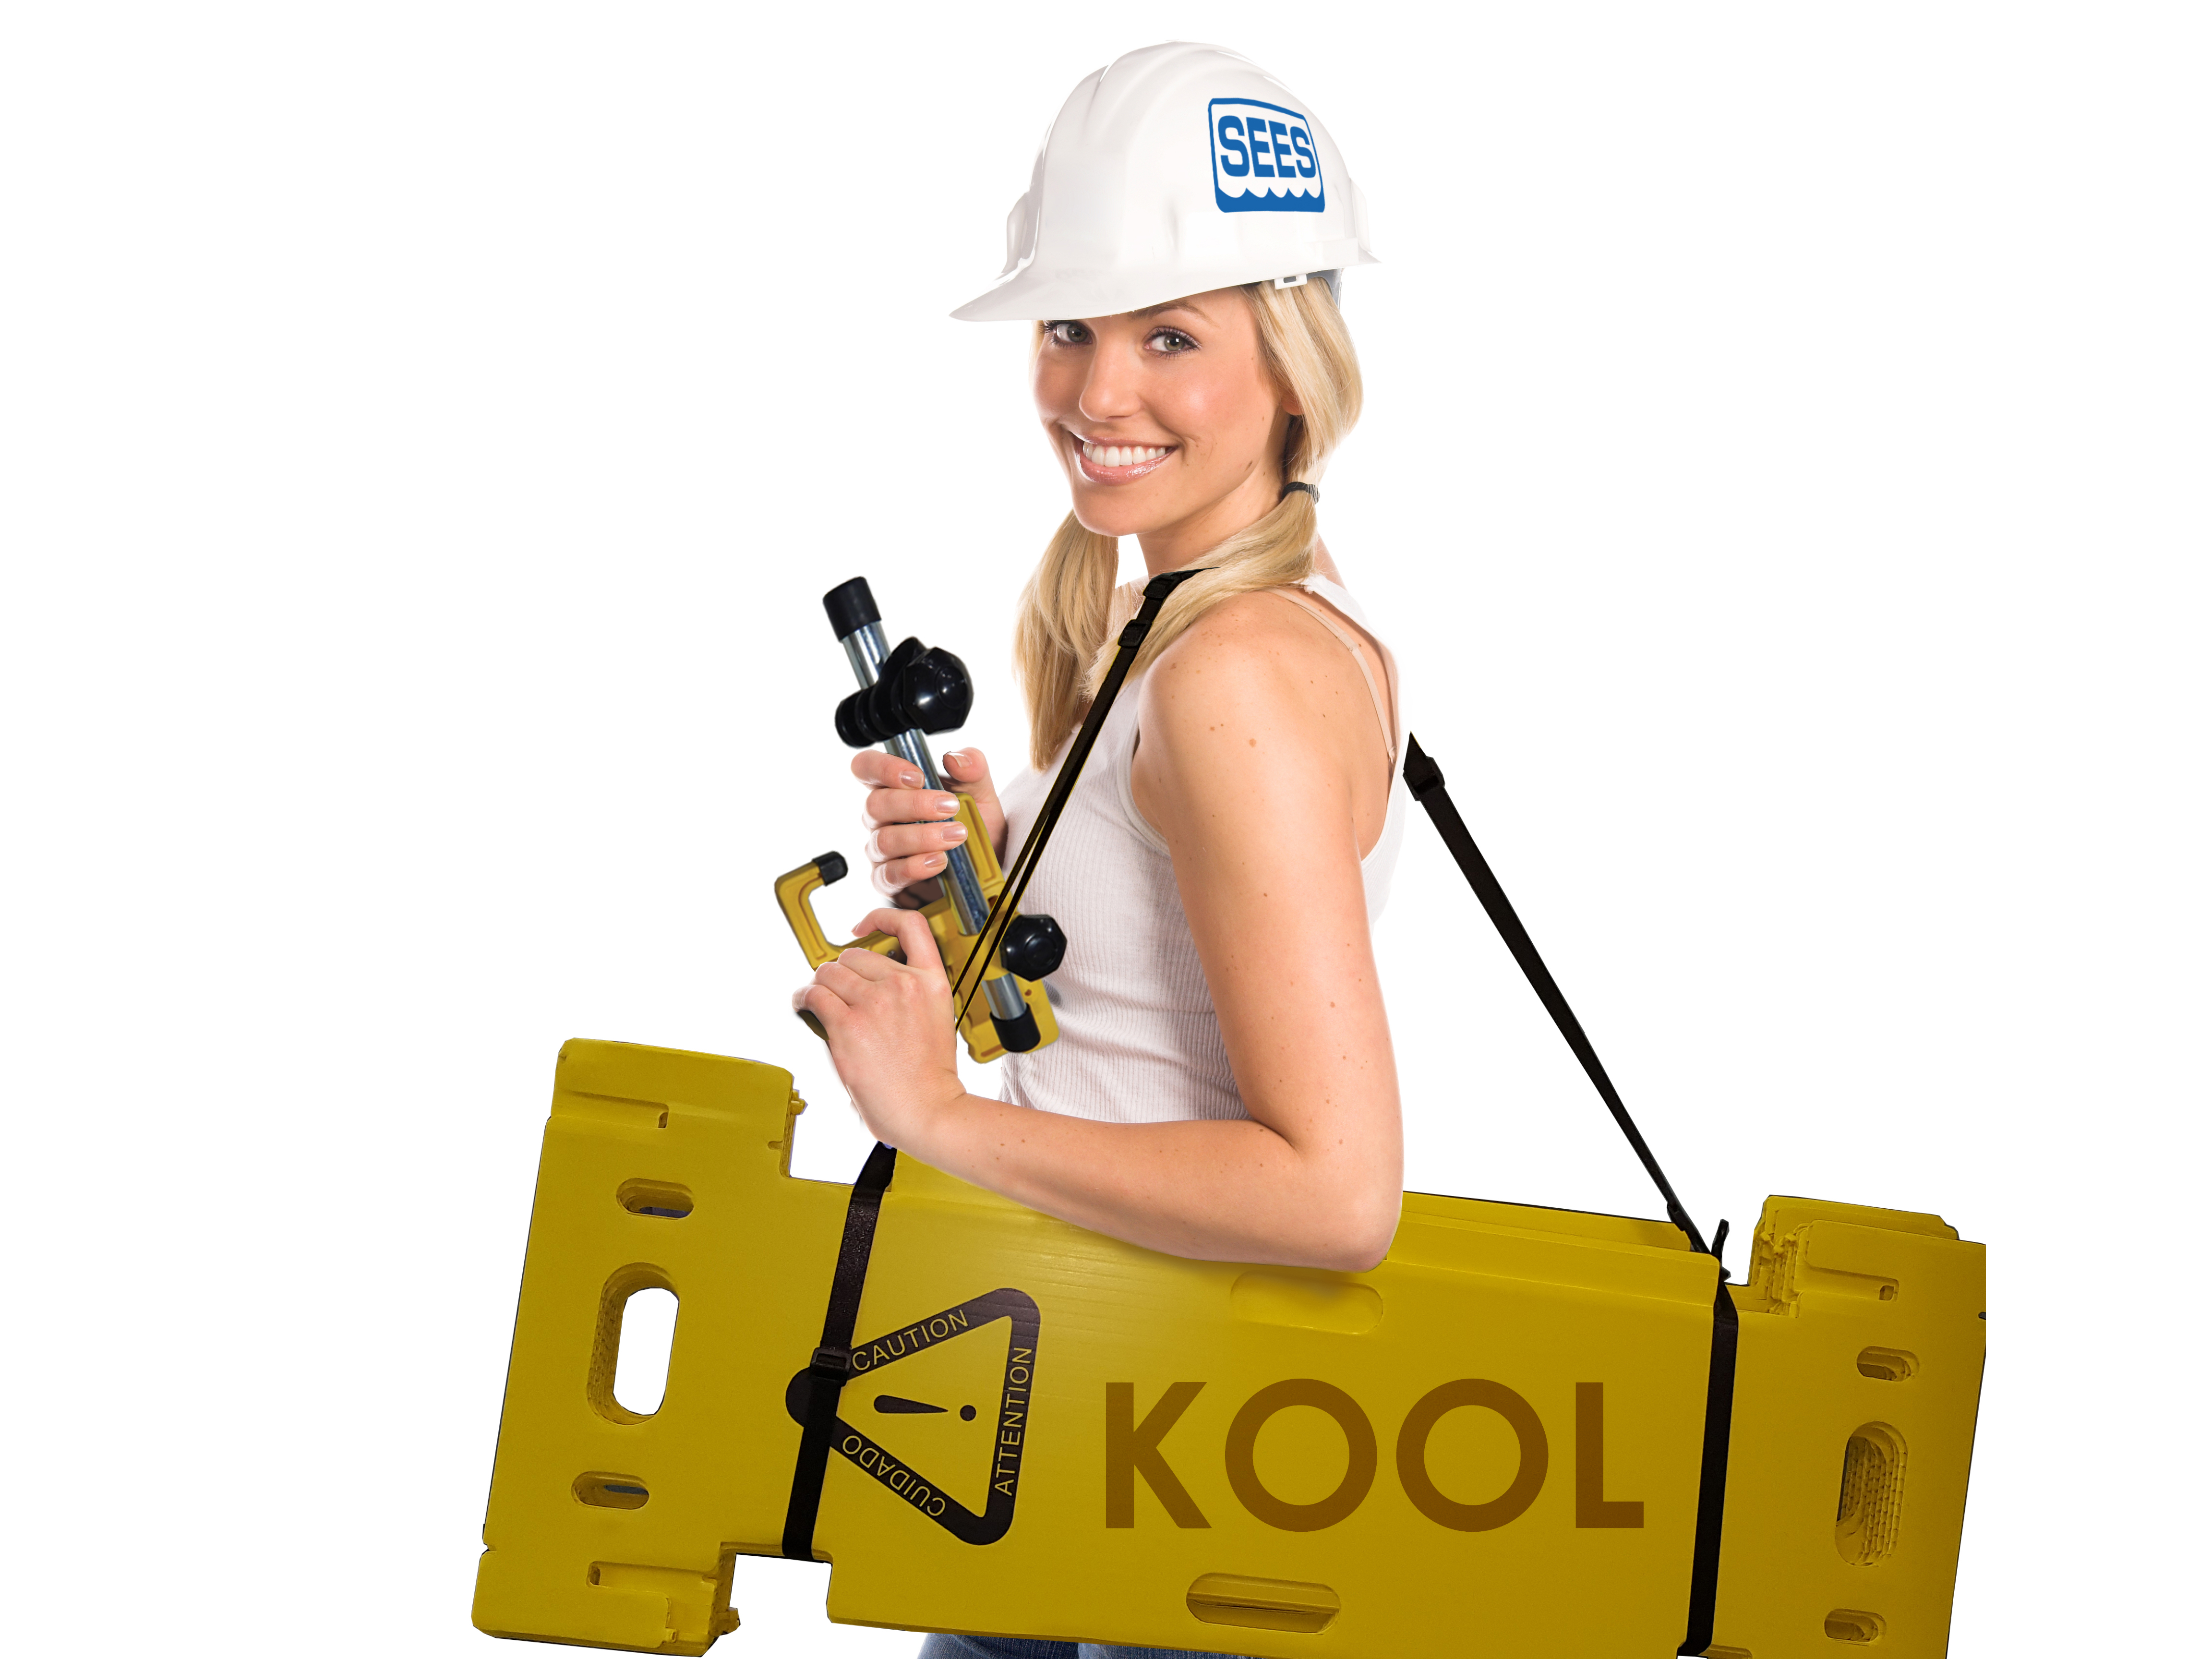 Kool / Sees, foldable safety barricade